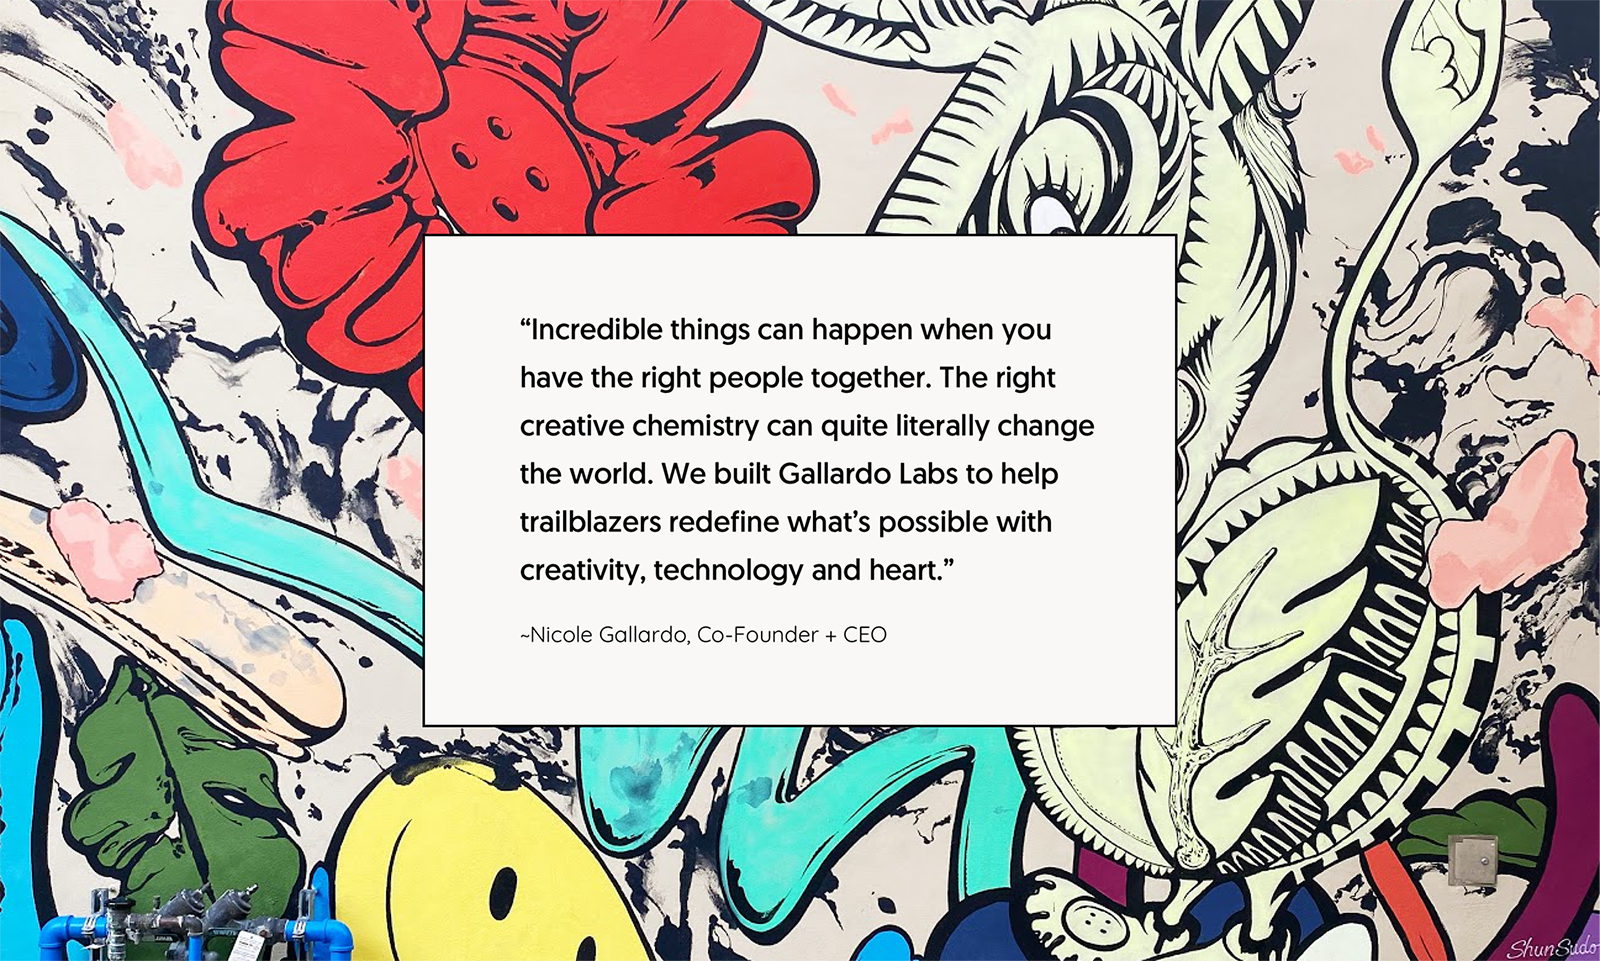 """Wall art with quote inside: """"Incredible things can happen when you have the right people together. The right creative chemistry can quite literally change the world. We built Gallardo Labs to help trailblazers redefine what's possible with creativity, technology and heart.""""  - Nicole Gallardo, Co-Founder + CEO"""